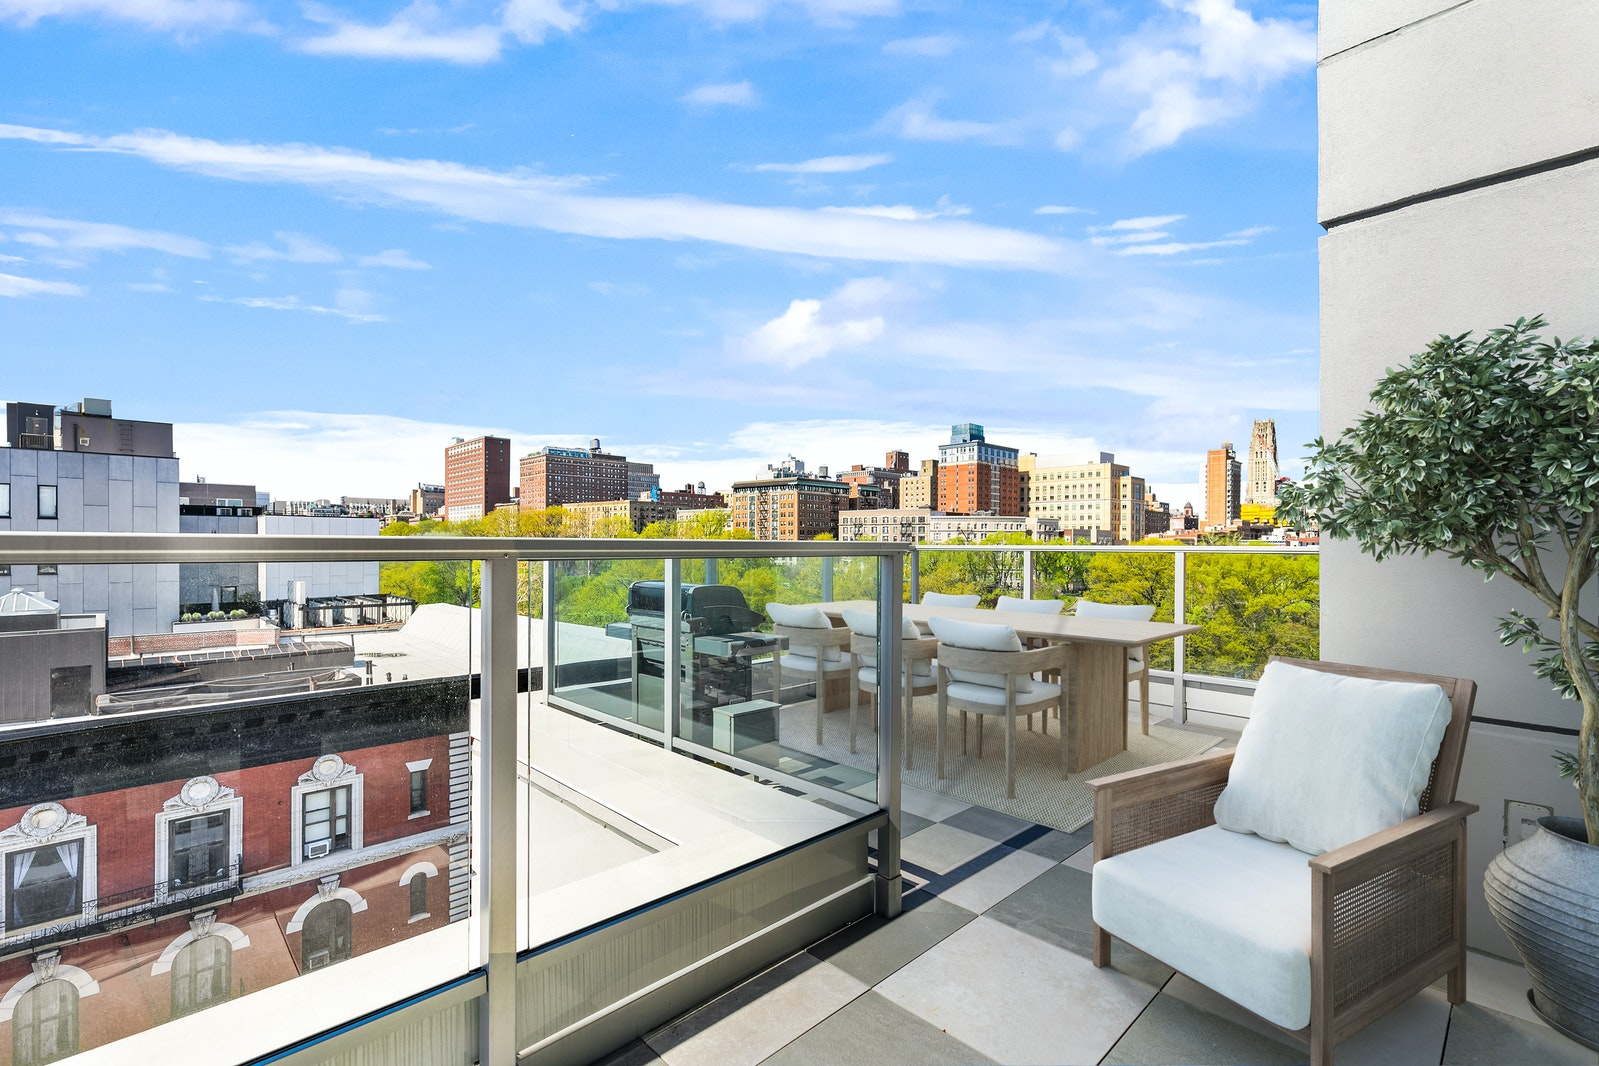 375 West 123rd Street Phb, Upper Manhattan, NYC, 10027, $3,550,000, Property For Sale, Halstead Real Estate, Photo 2